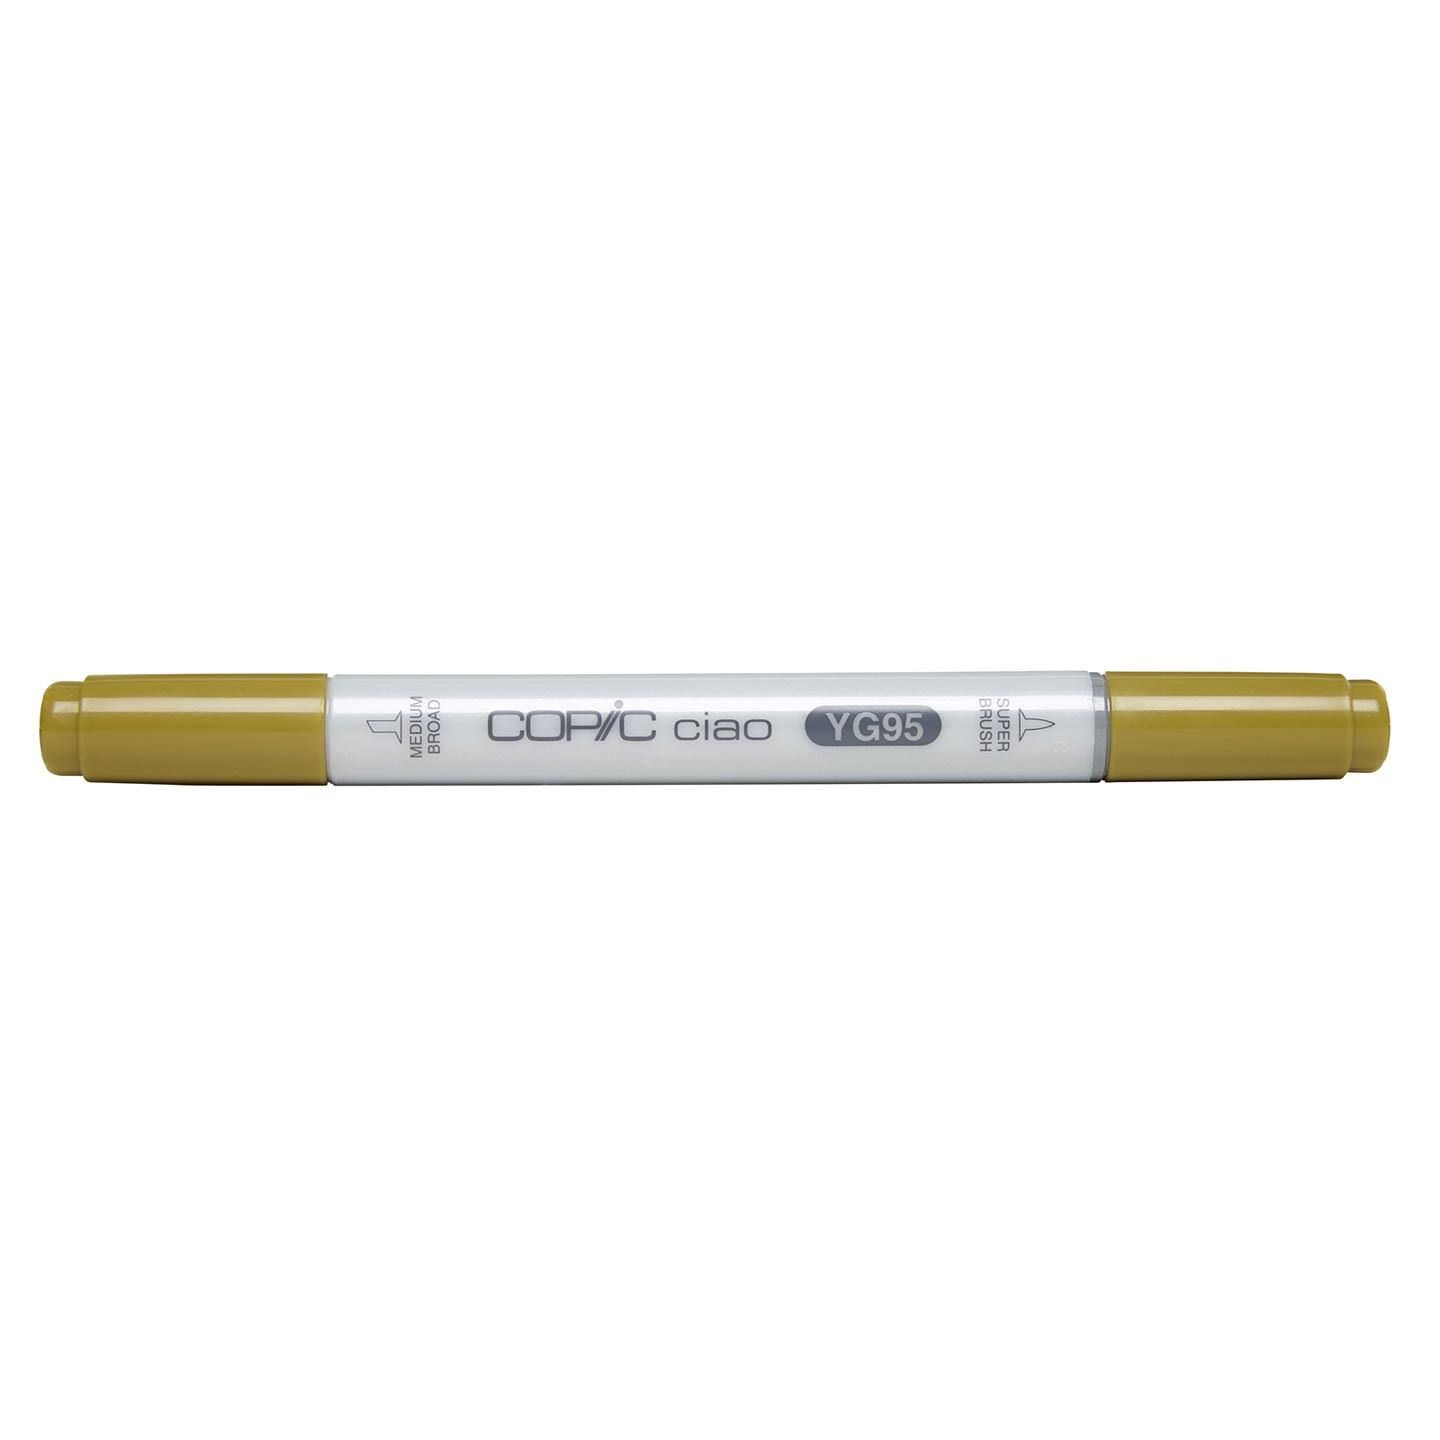 Copic : Ciao Marker : Pale Olive (YG95)